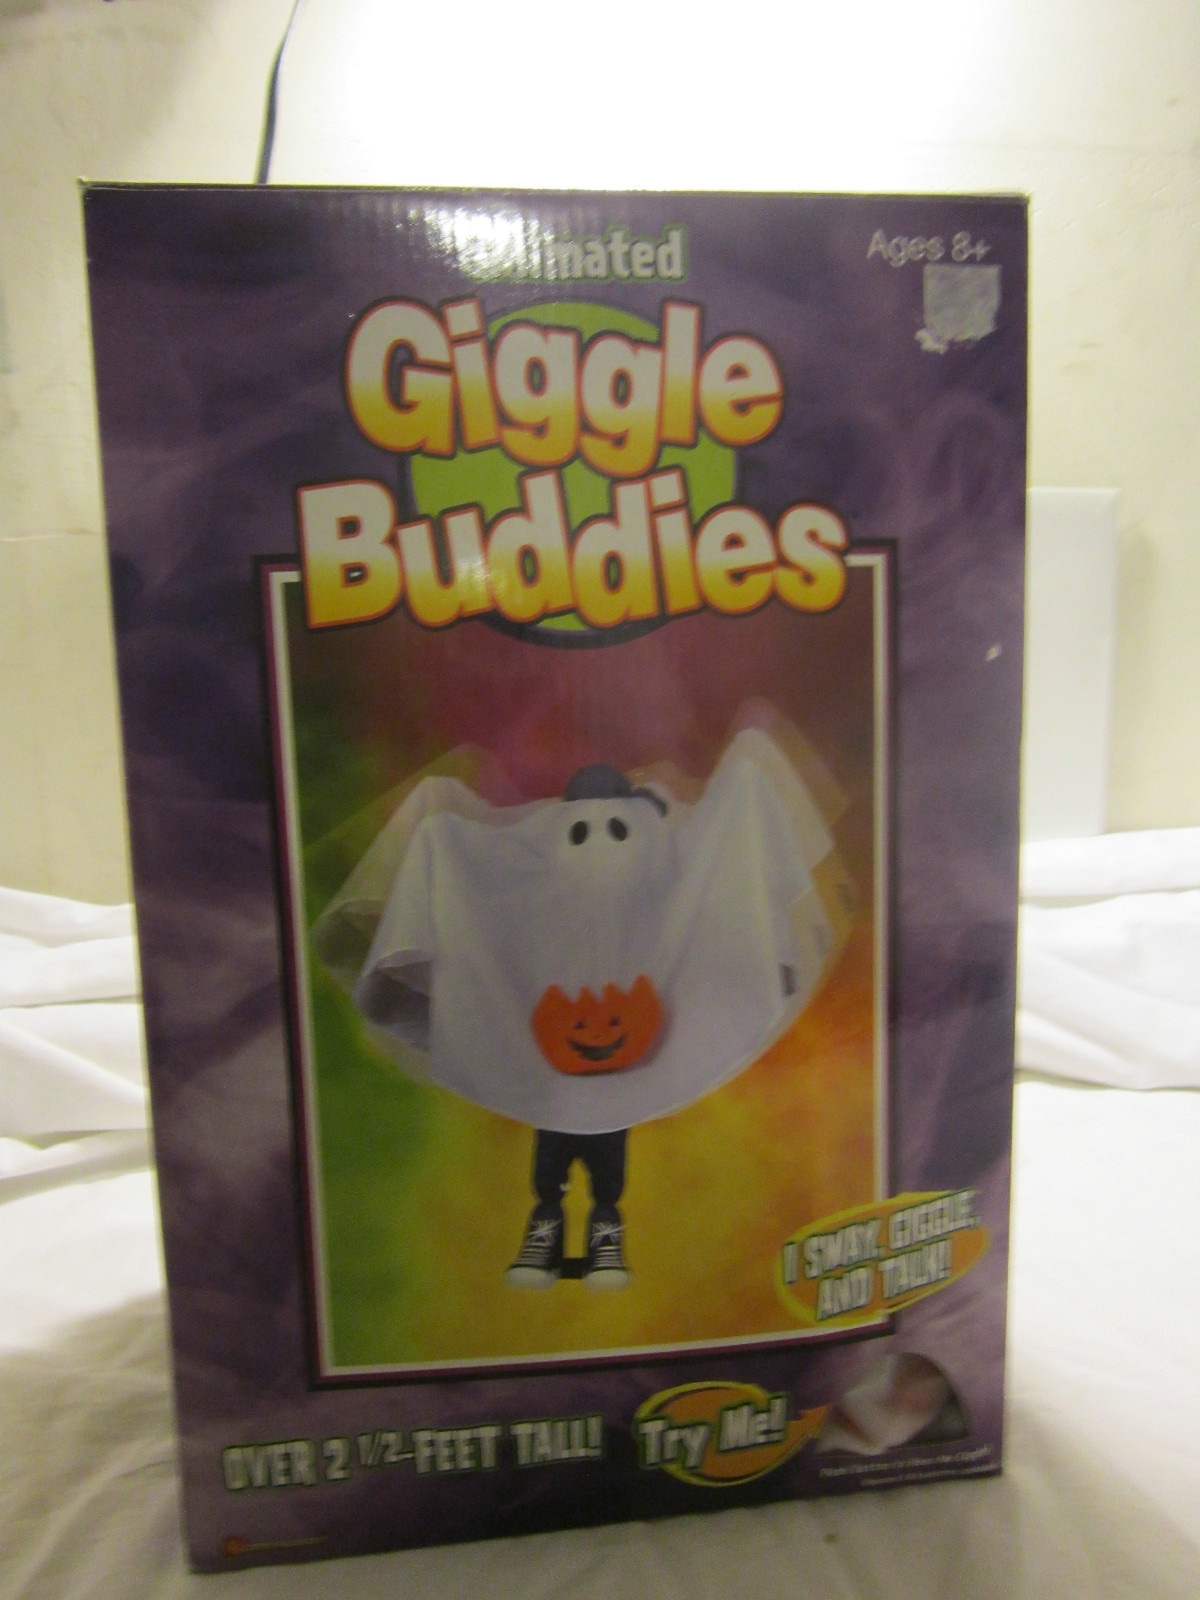 Giggle buddies gemmy wiki fandom powered by wikia for Animated floating ghost decoration